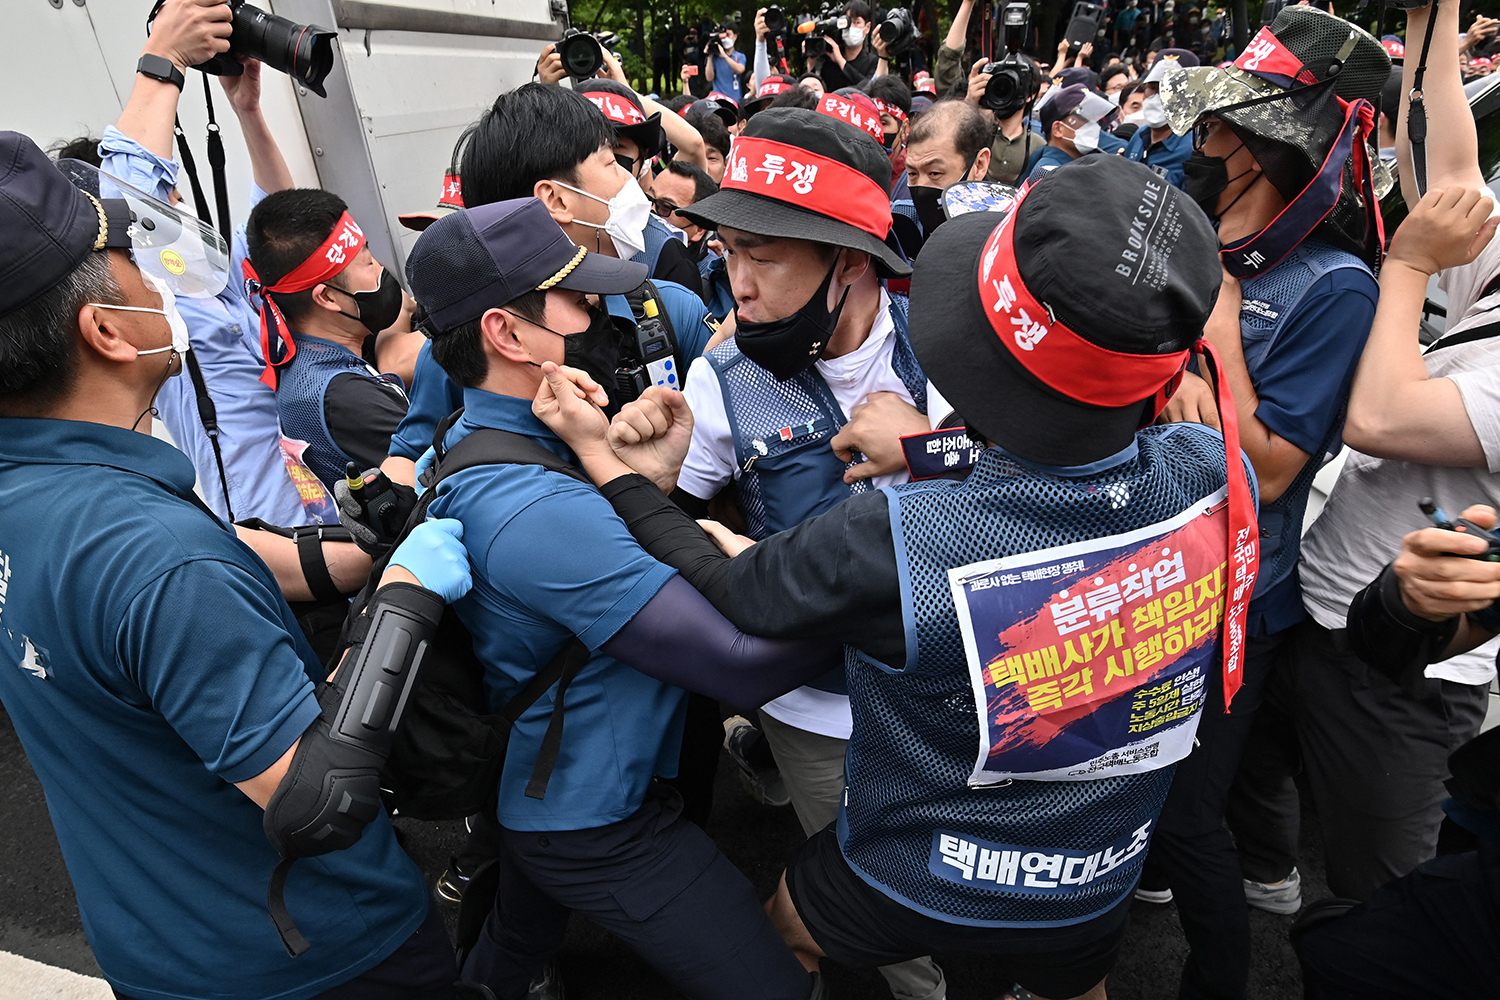 Workers scuffle with police in South Korea at demonstration